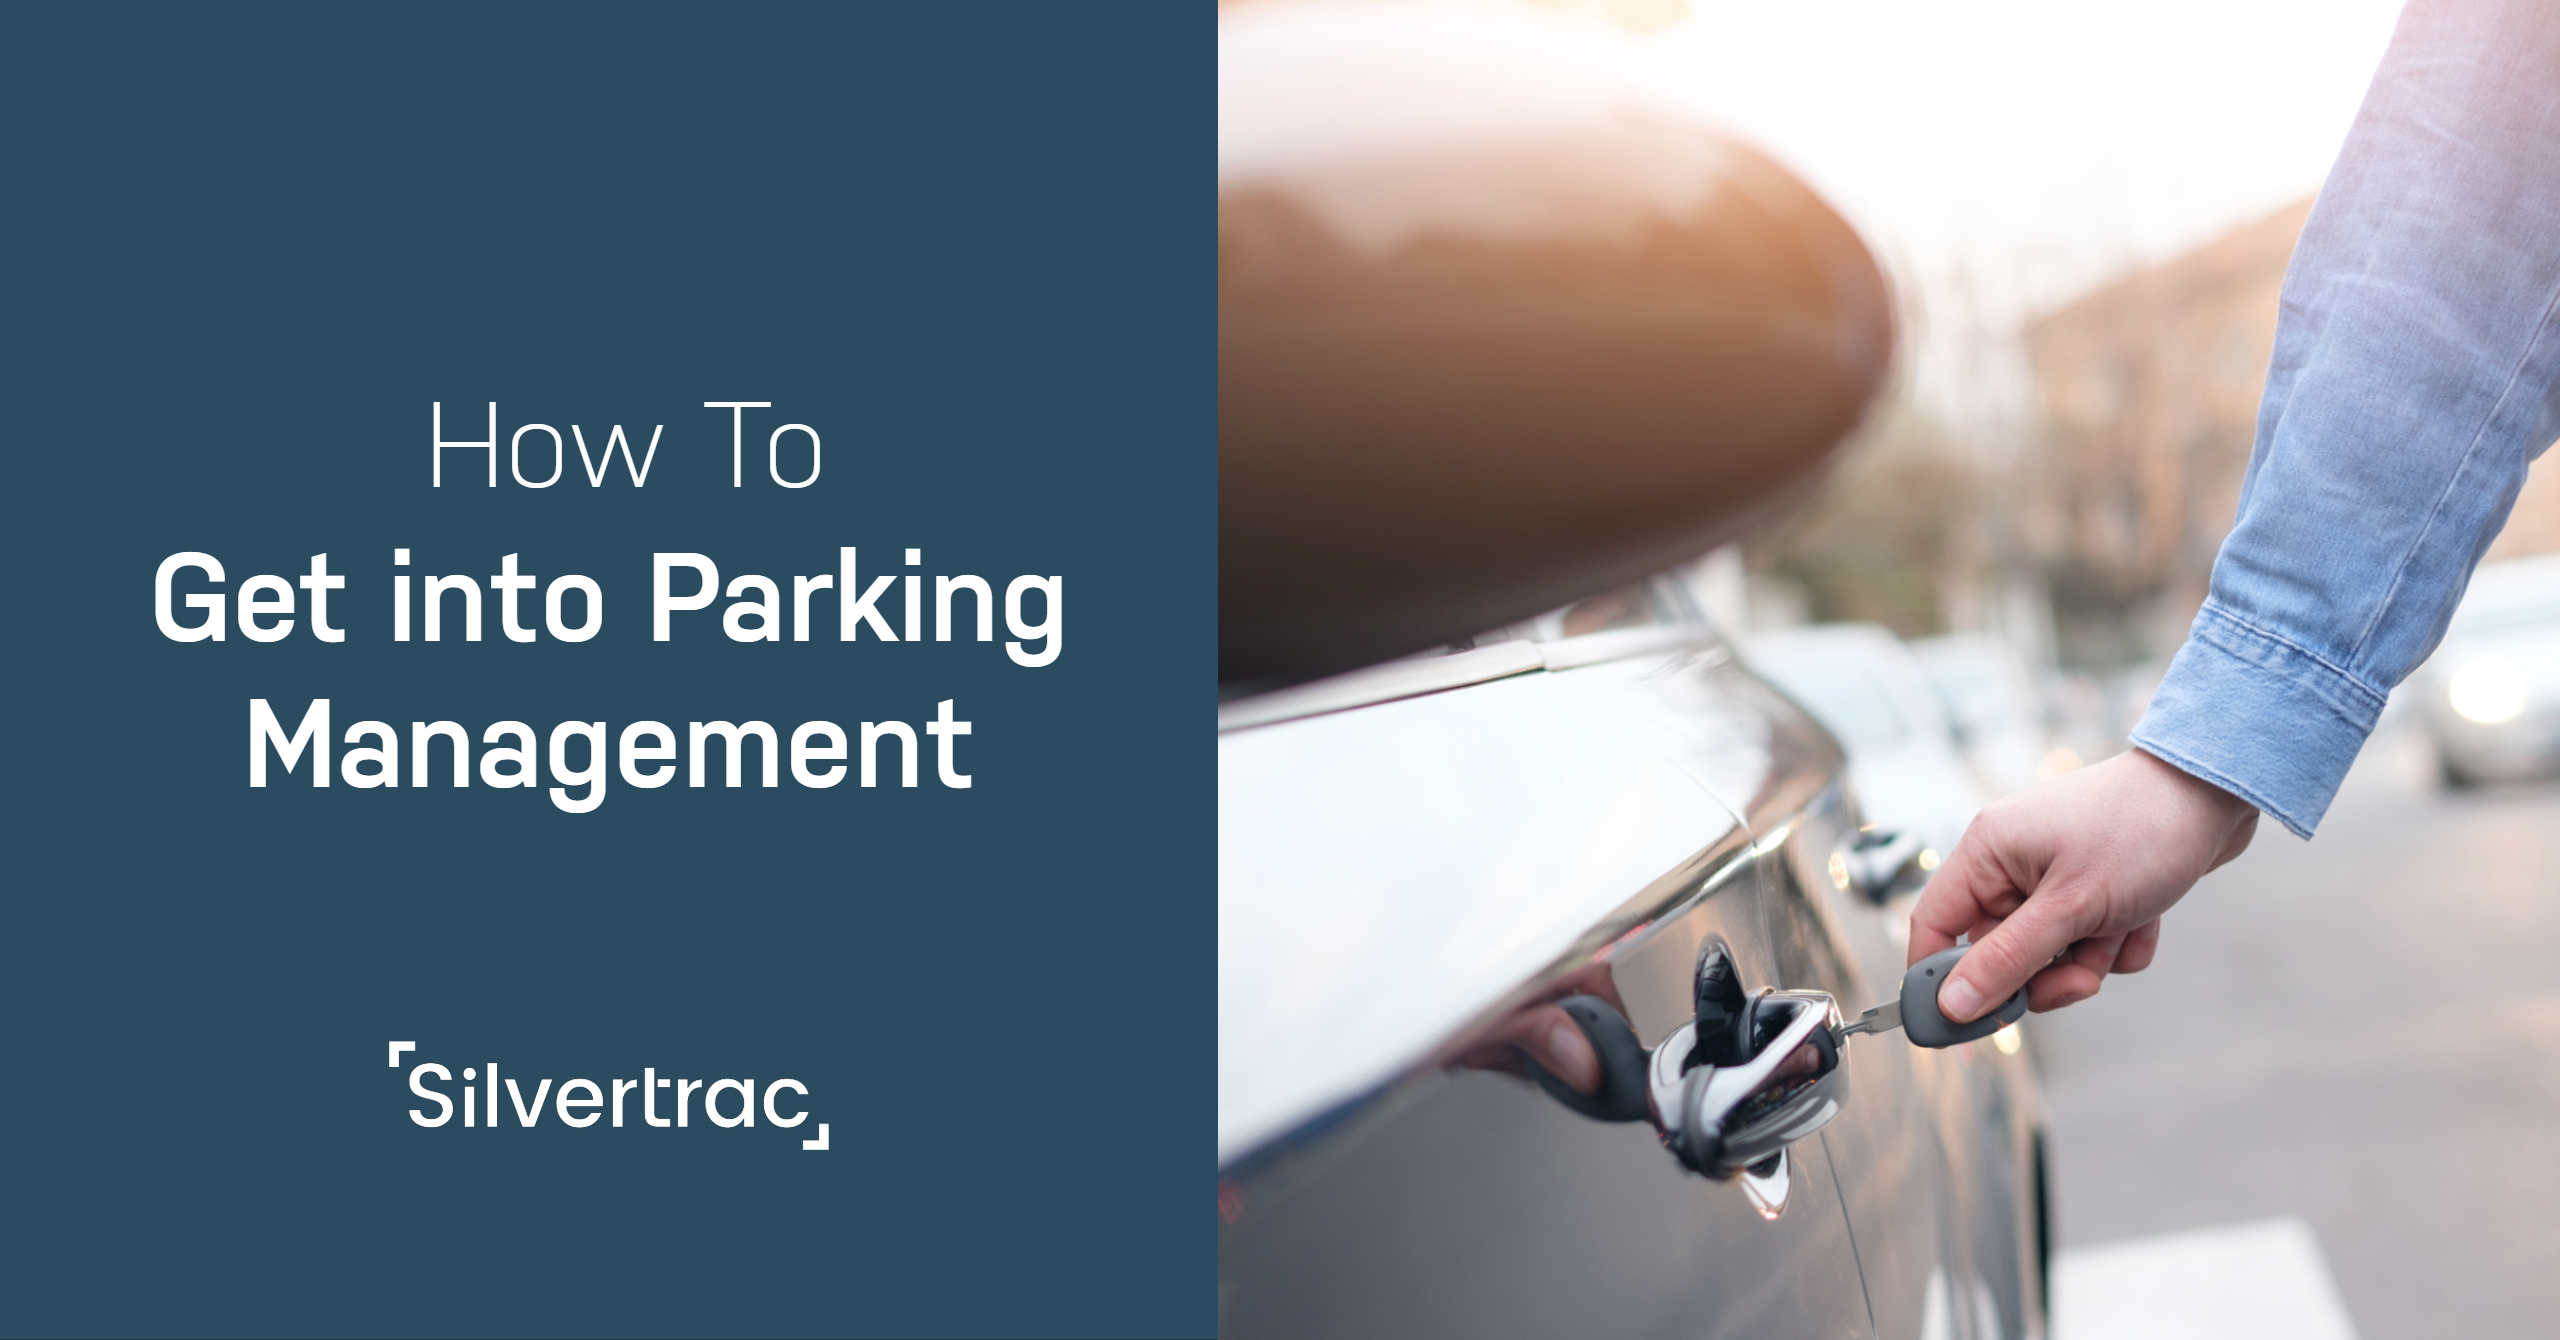 How to Get Into Parking Management